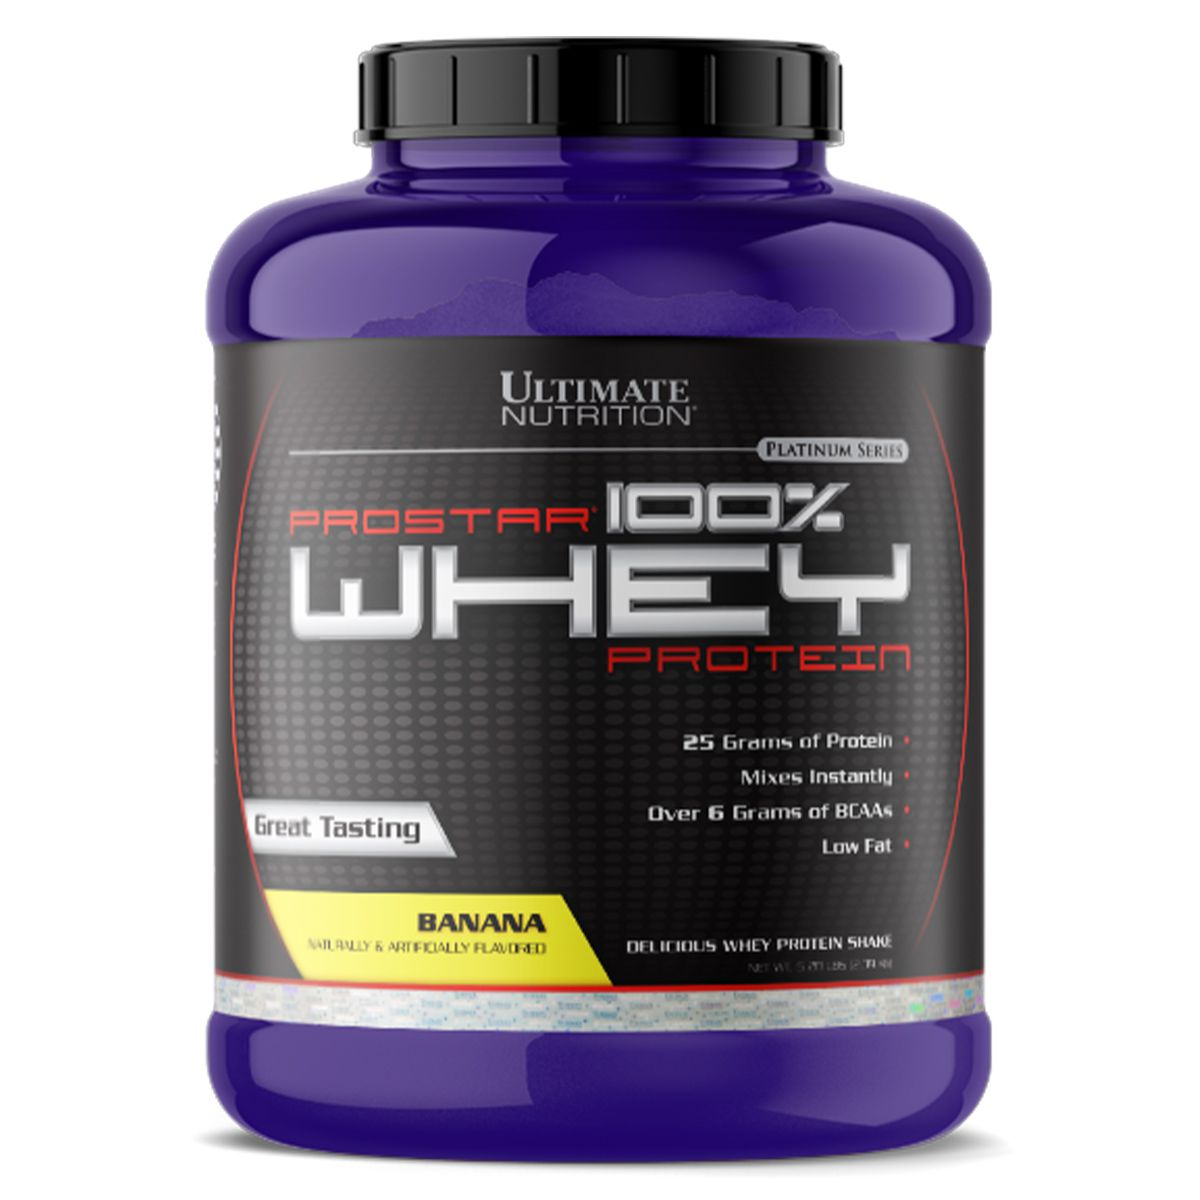 Prostar 100% Whey Protein 2,3kg - Ultimate Nutrition